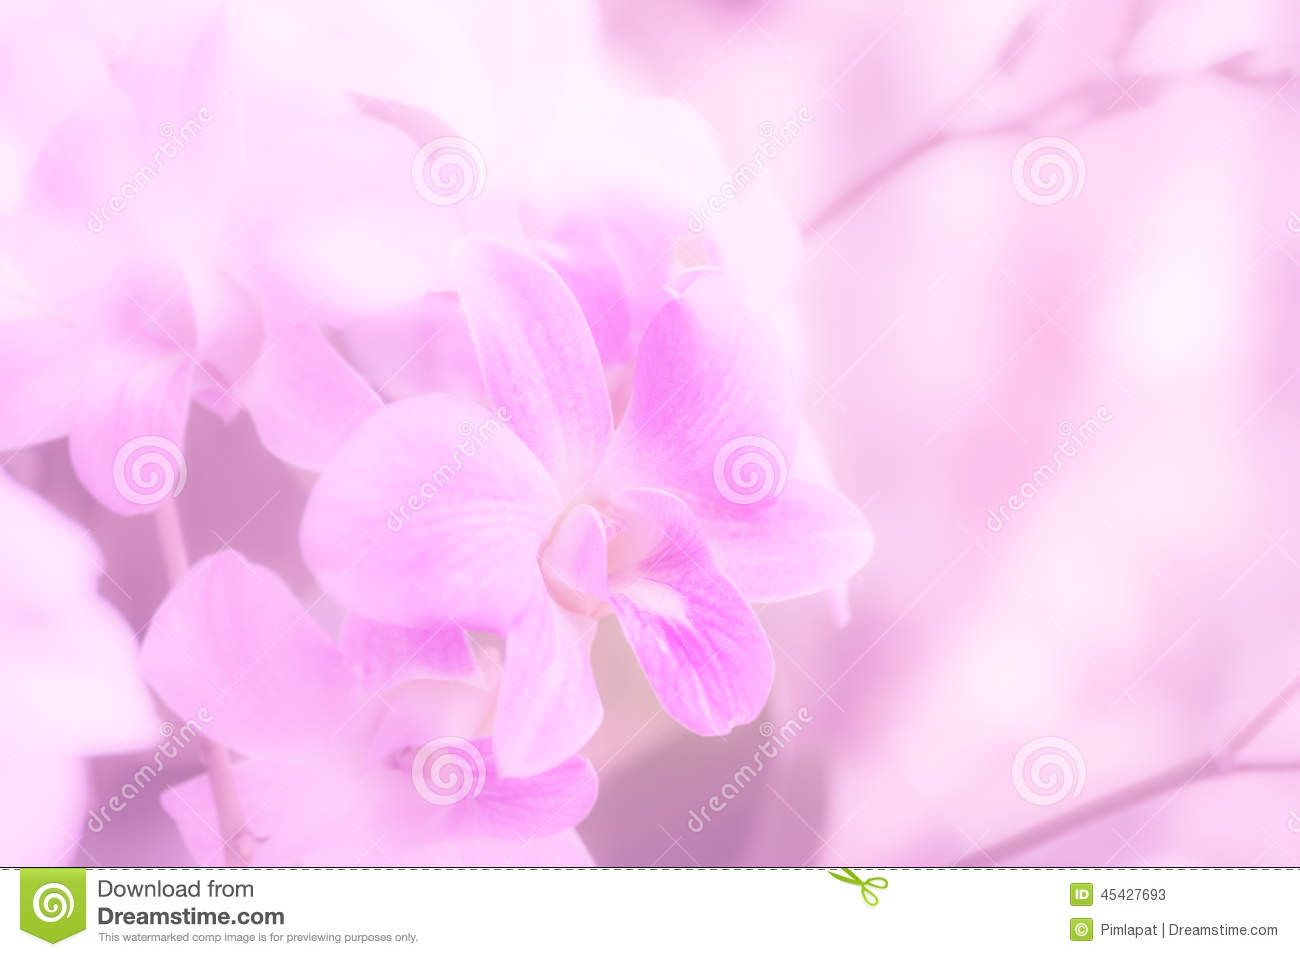 Soft Orchid Pastel Color For Background Stock Photo - Image: 45427693